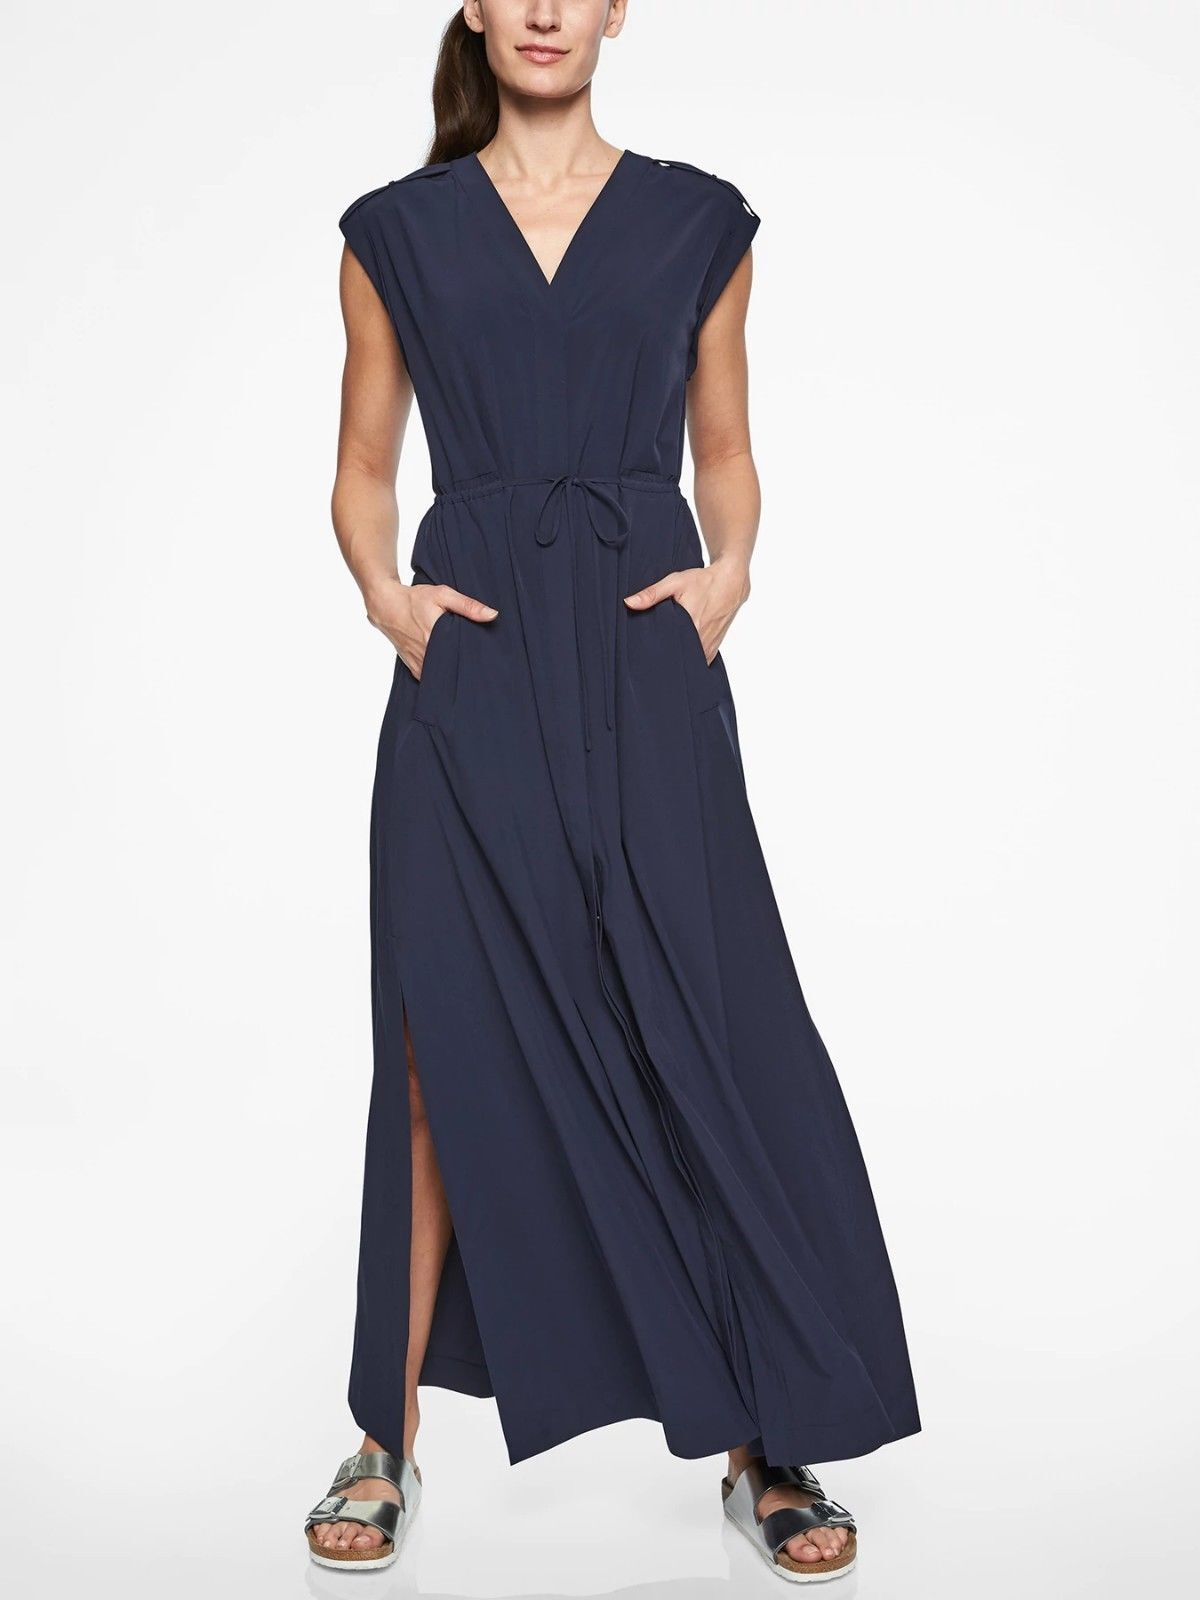 f684bd41 ATHLETA Mara Maxi Dress- Navy NWT NWT NWT Sz 2X PLUS 163f12 - jeans ...